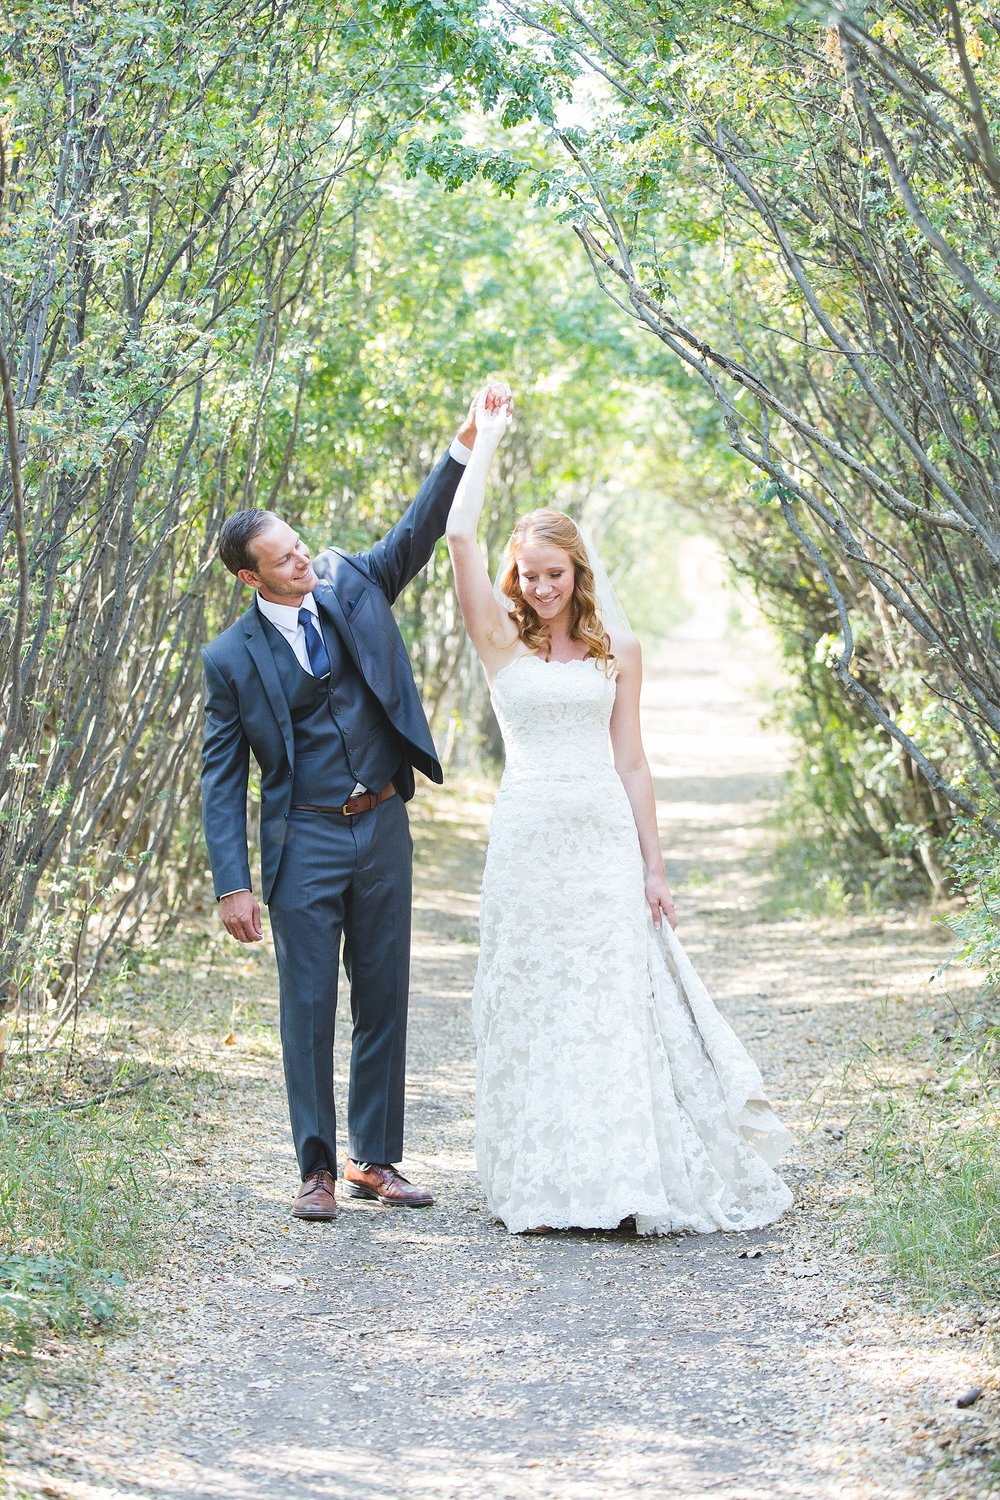 Calgary Wedding Photography in Edworthy Park